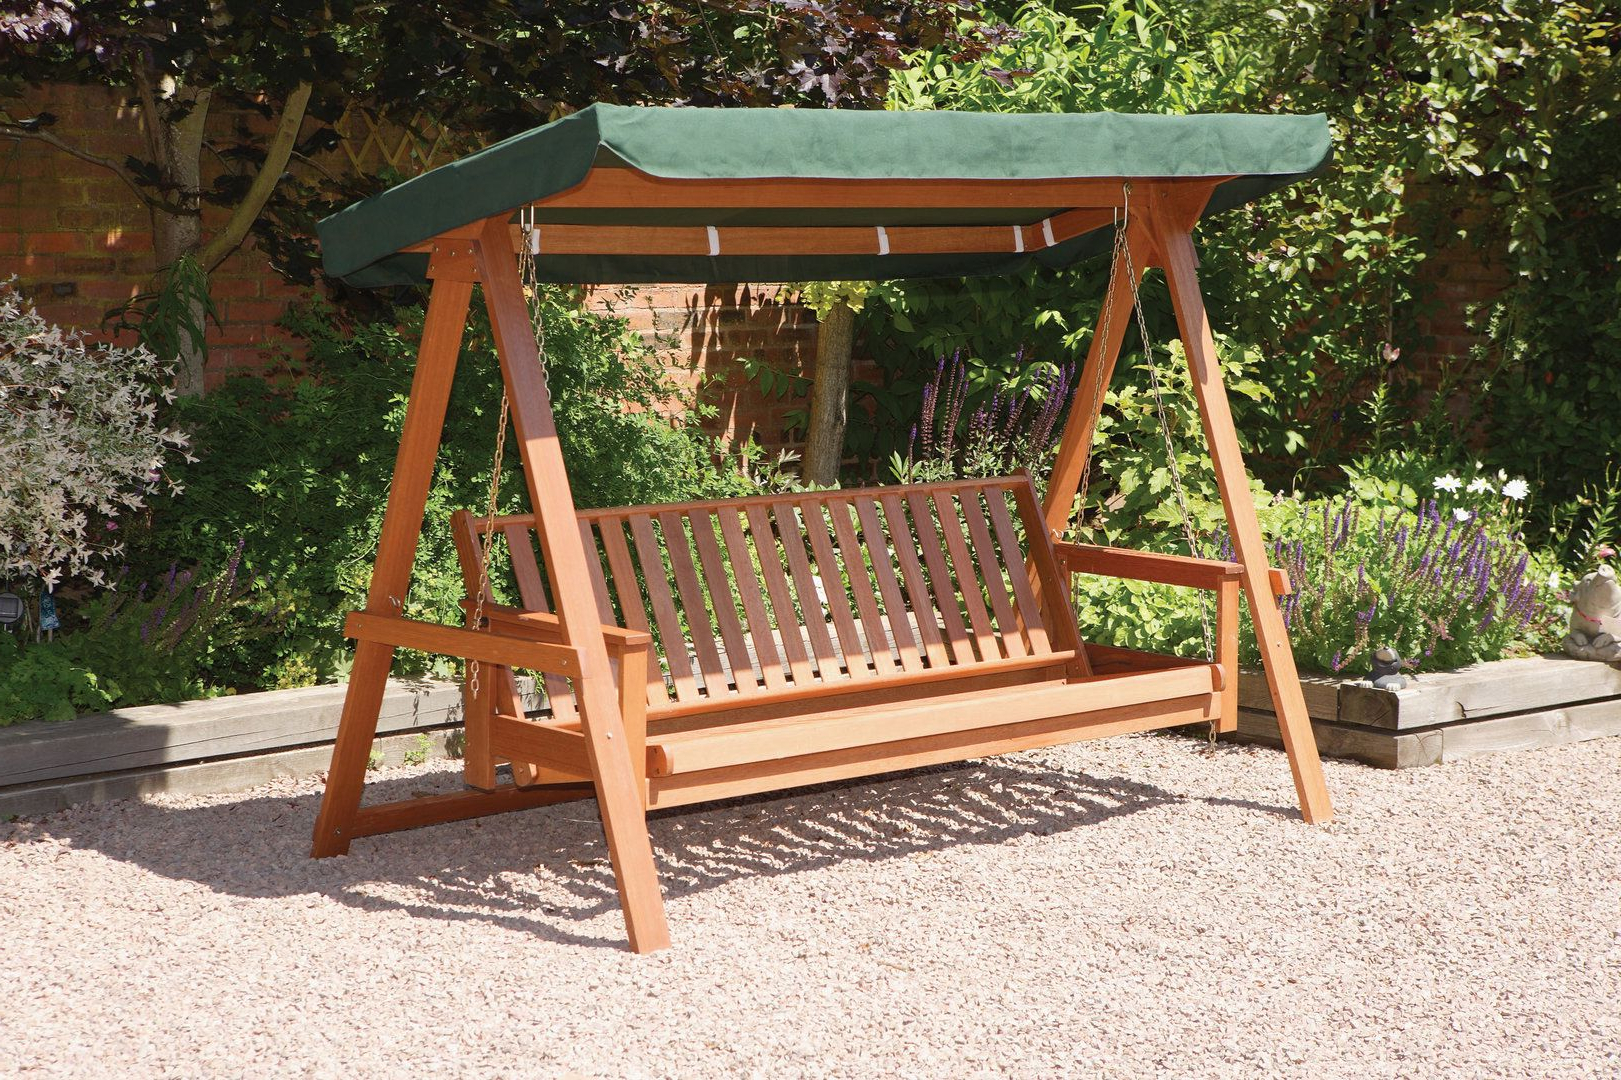 3 Seat Pergola Swings Intended For 2020 Quality Wooden 3 Seater Garden Swing Bed Hammock – Swing (Gallery 1 of 25)